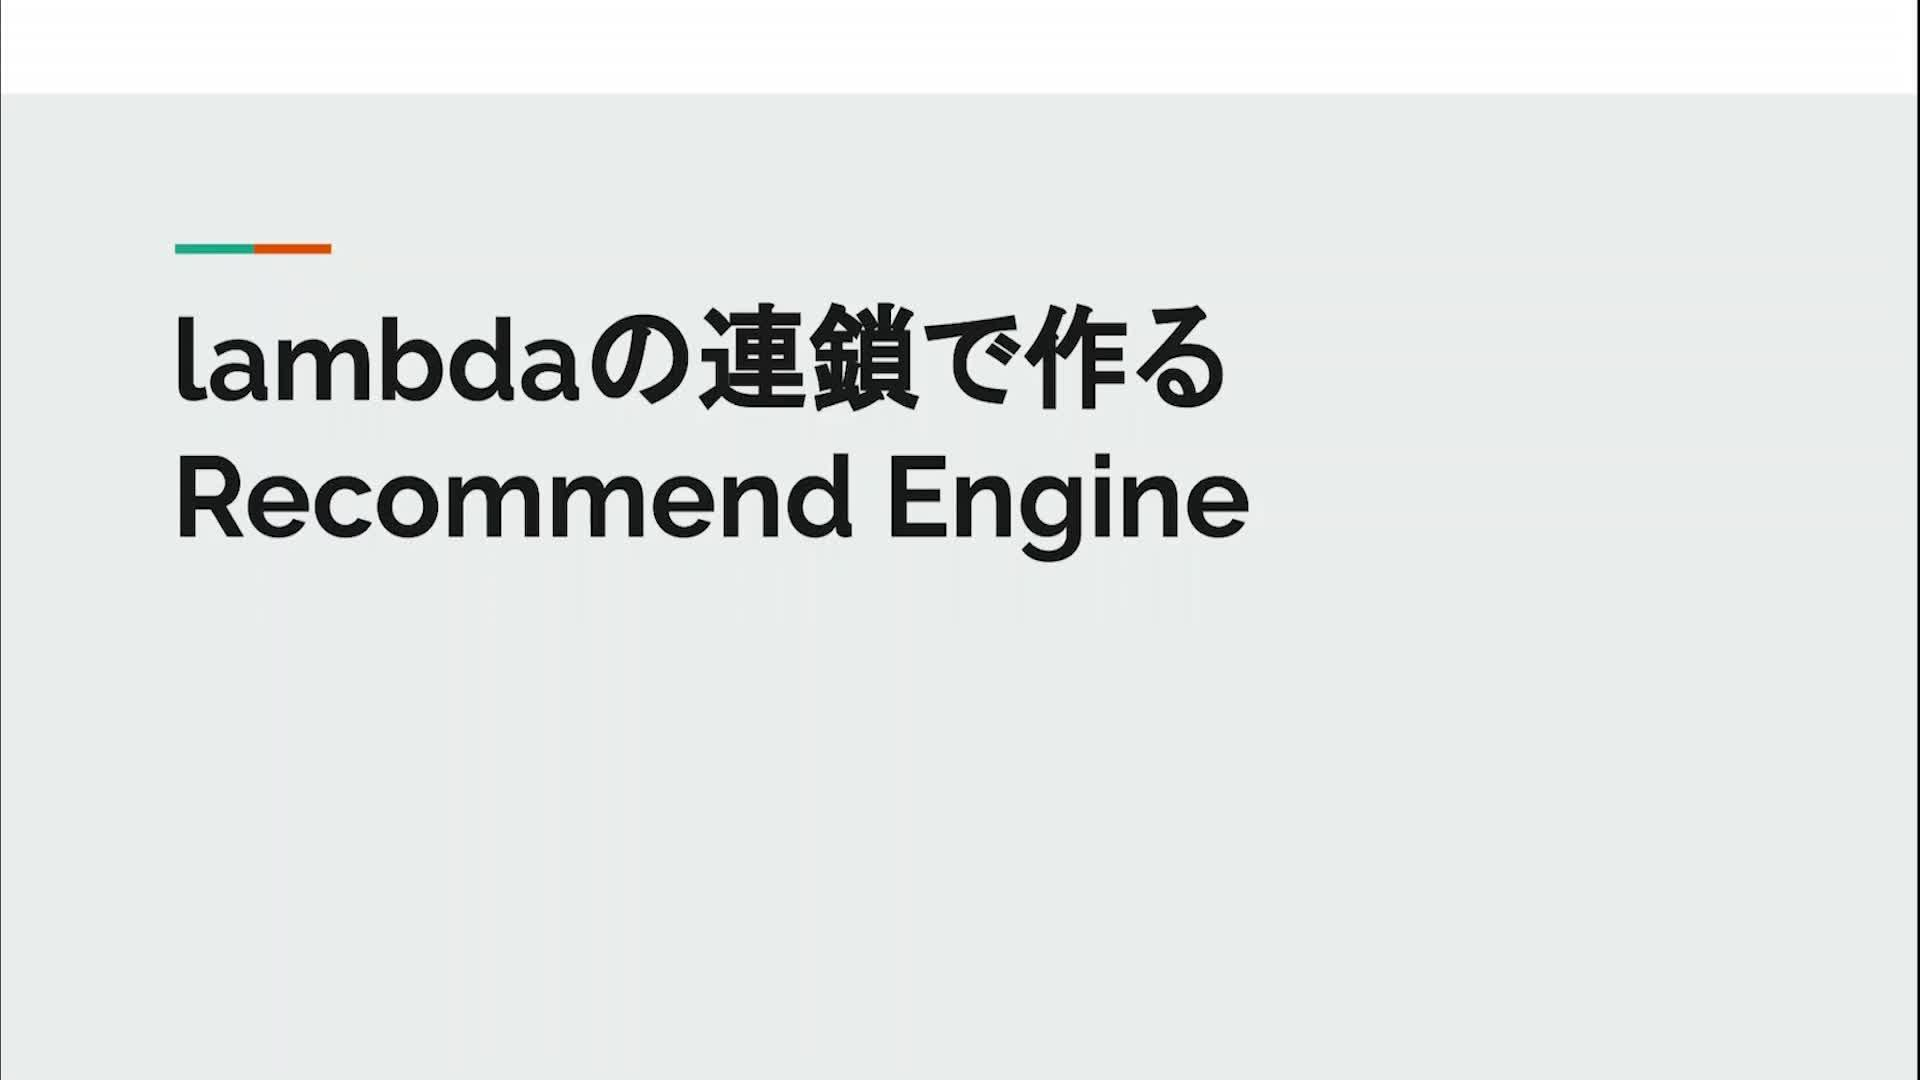 lambdaの連鎖で作るRecommend Engine